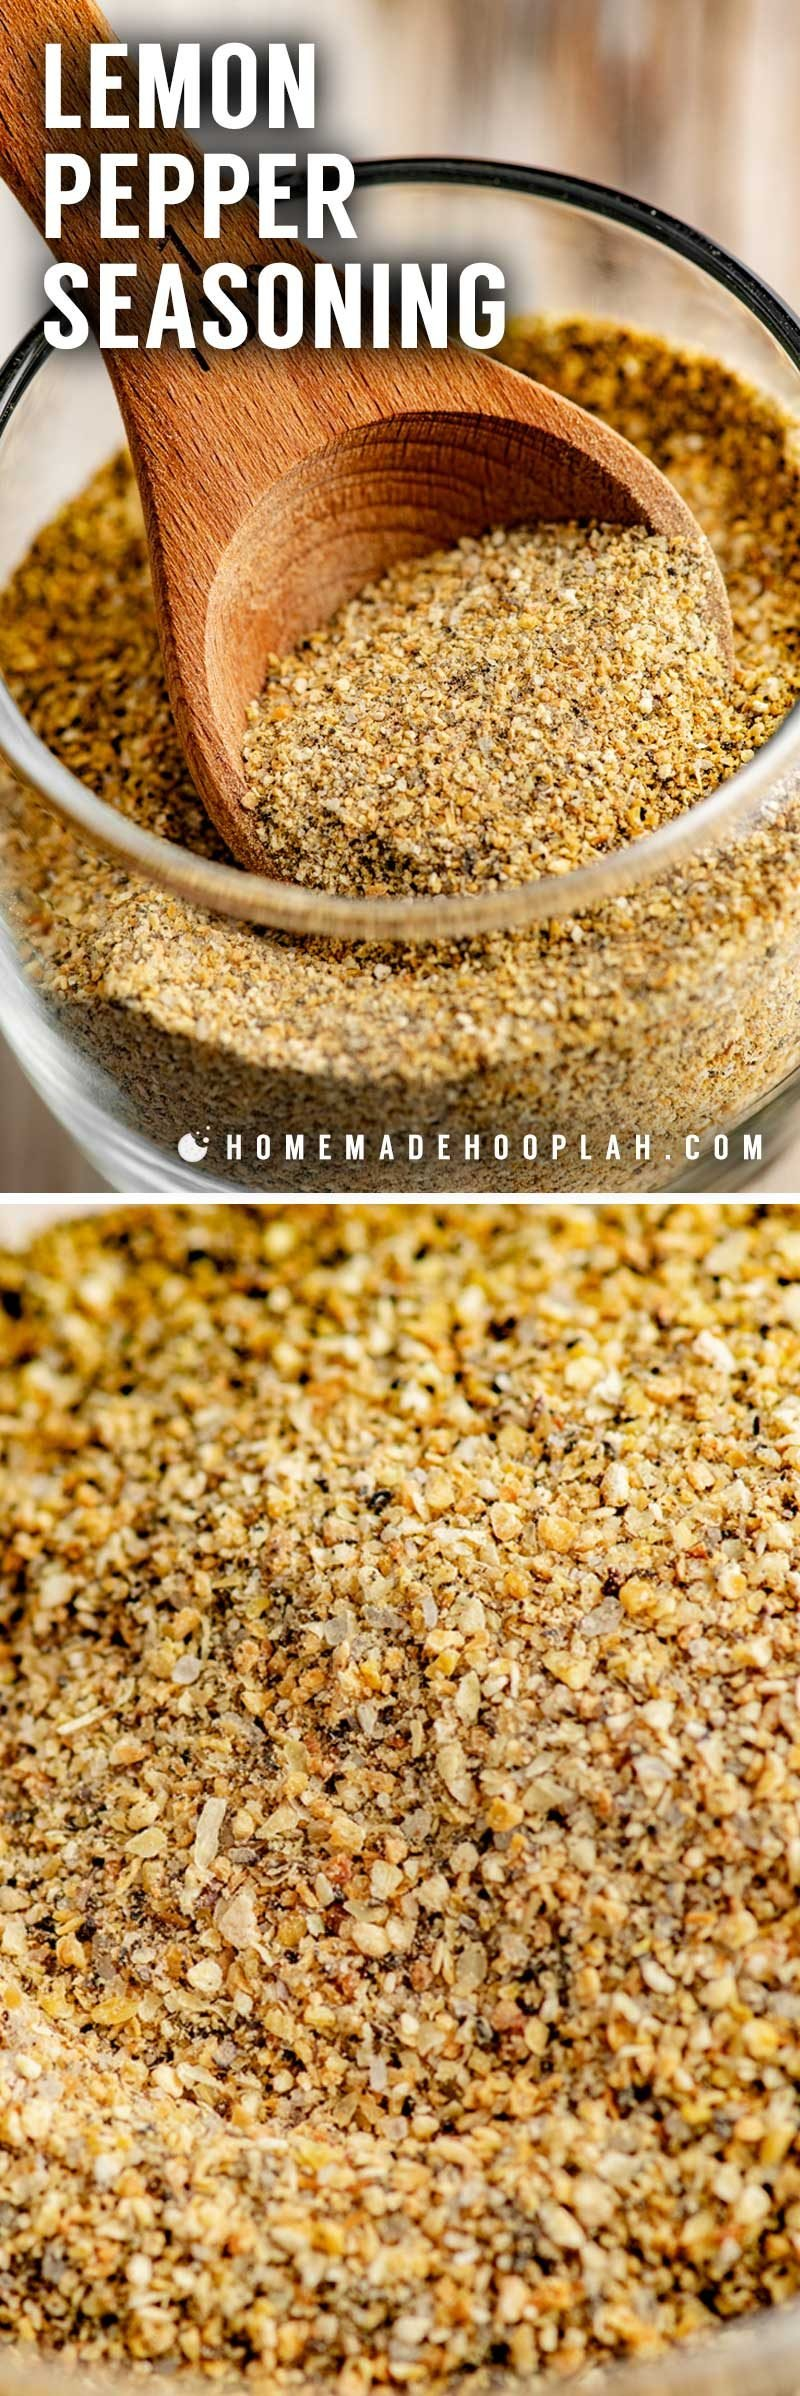 The best lemon pepper seasoning from scratch.